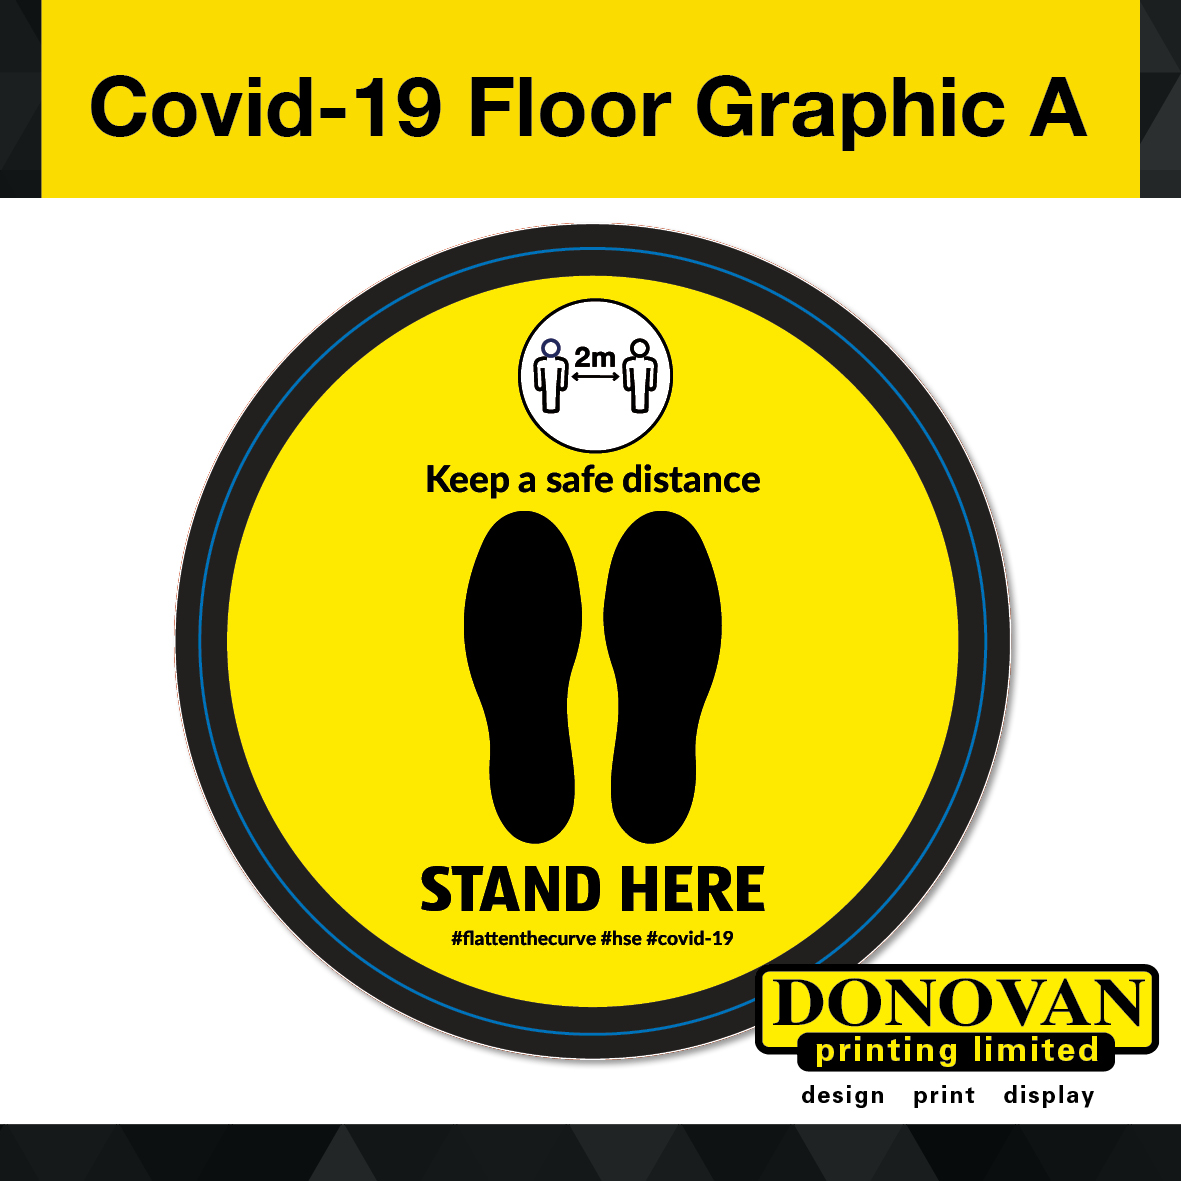 Covid Floor Graphic A Image